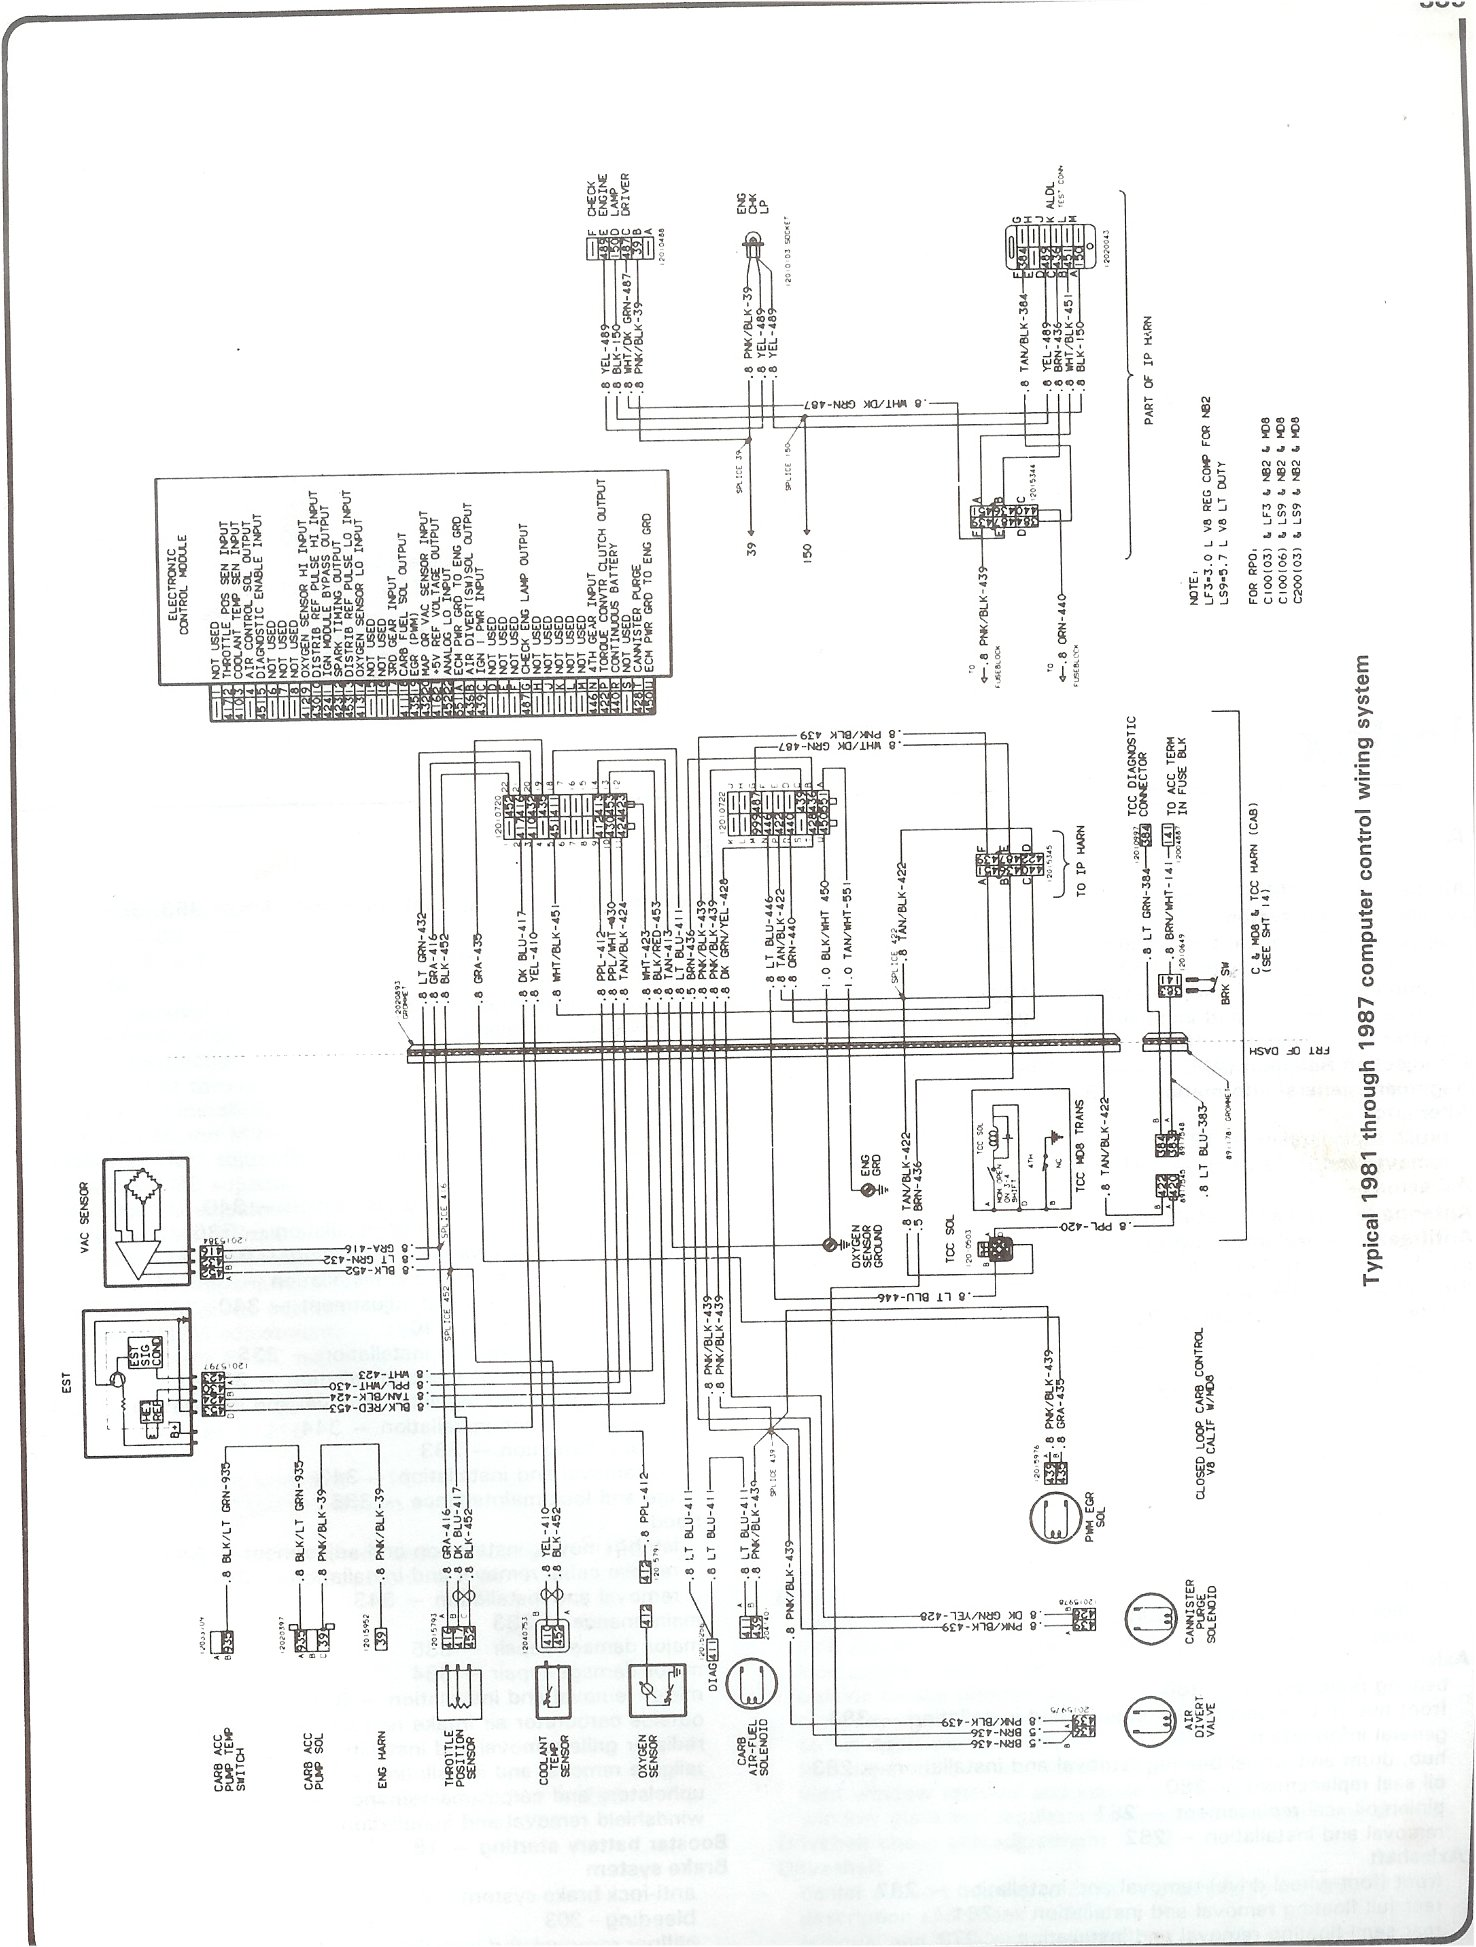 81 87_computer_control_wiring complete 73 87 wiring diagrams 1985 chevy truck wiring diagram at aneh.co